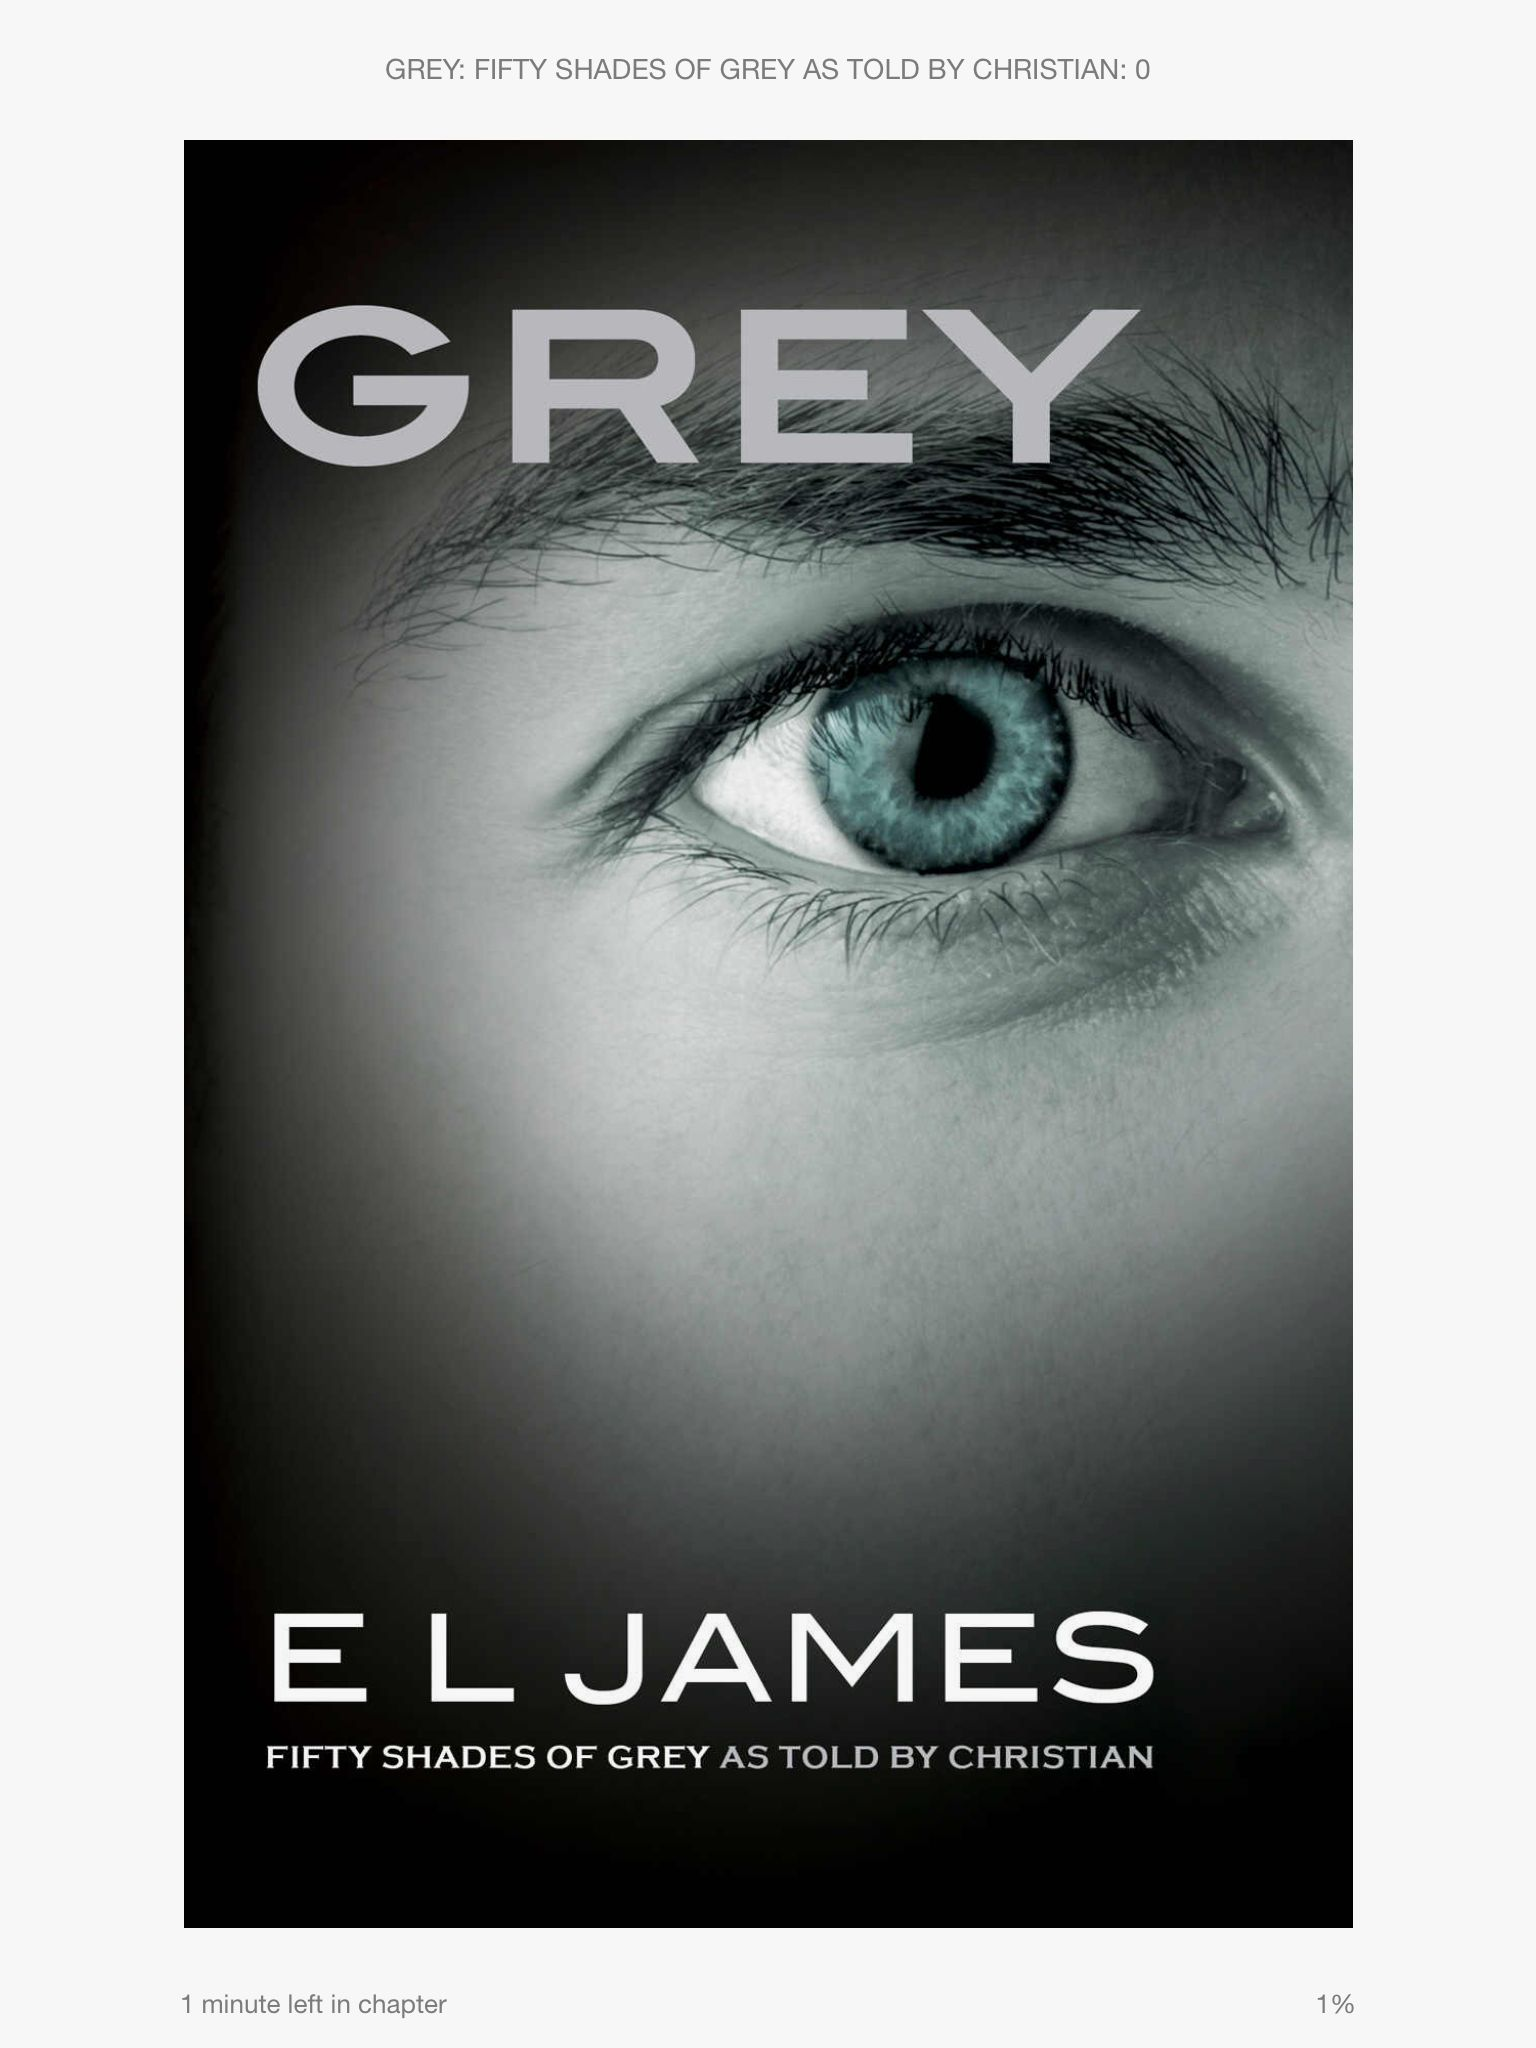 Leer Libro Cincuenta Sombras De Grey Grey By E L James Told From Christians Point Of View